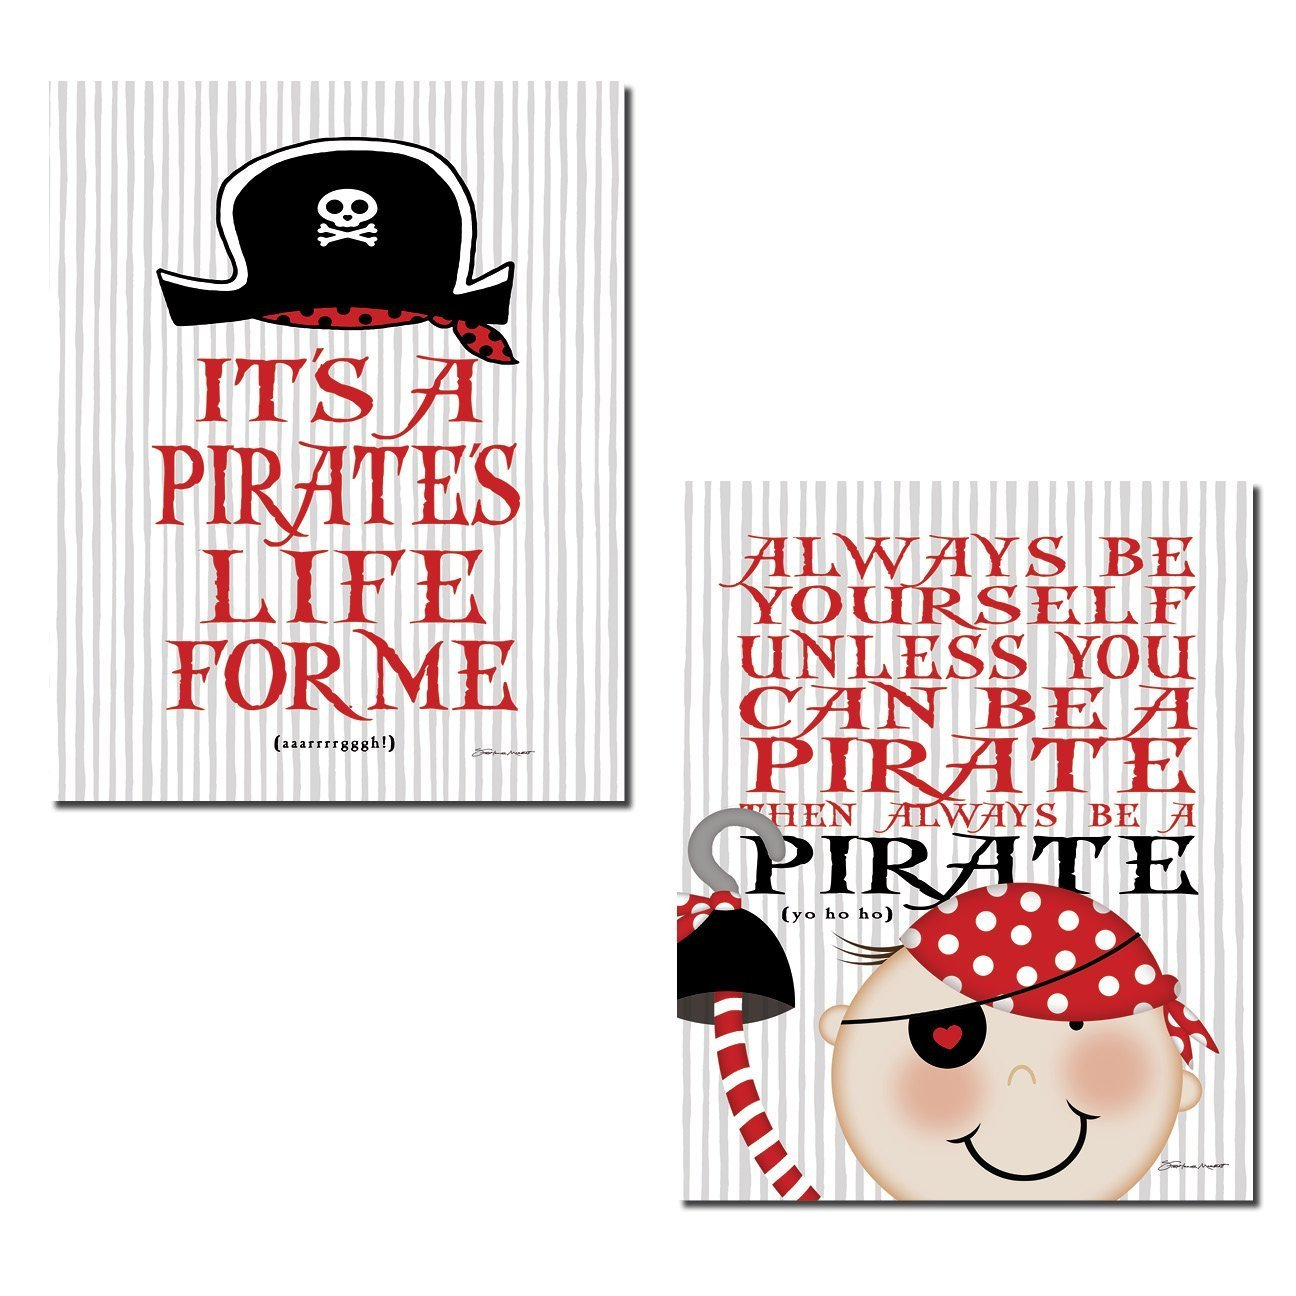 Adorable ''It's A Pirate's Life For Me'' And ''Be Yourself Unless You Can Be A Pirate'' Set; Perfect for a Child's Room or Nursery: Two 11x14in Poster Prints